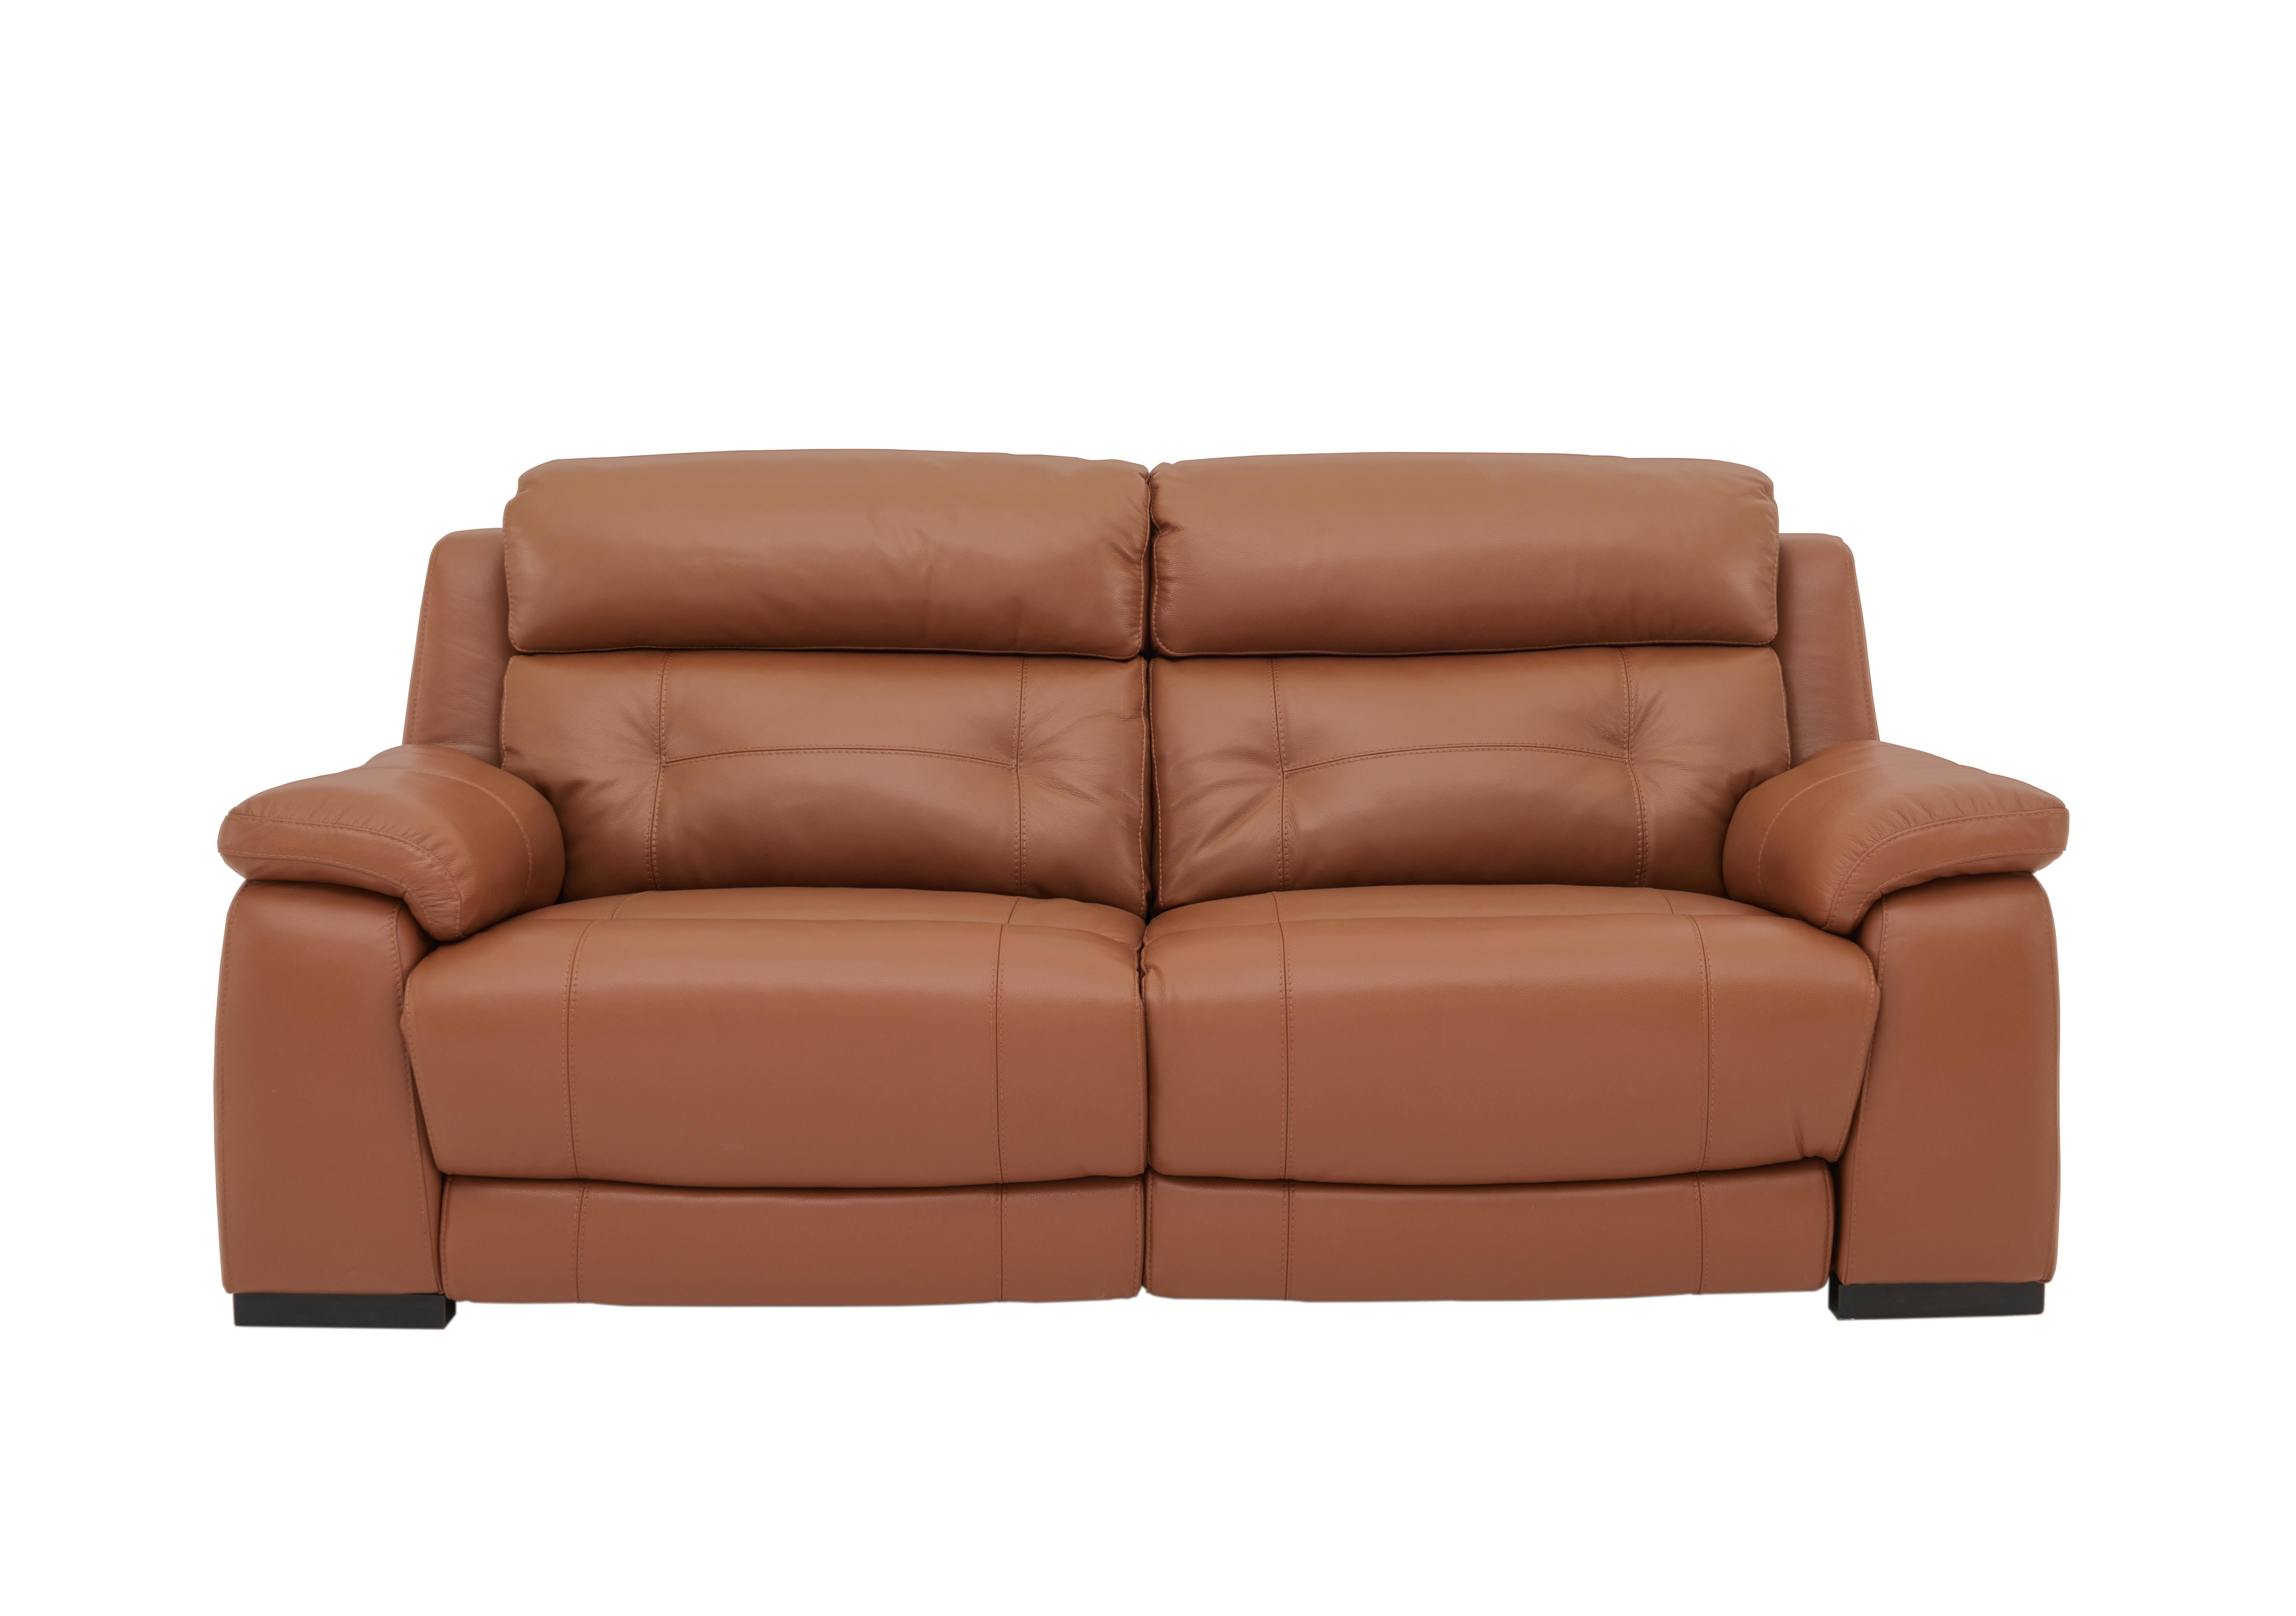 Picture of: Ease 3 Seater Leather Recliner Sofa Furniture Village